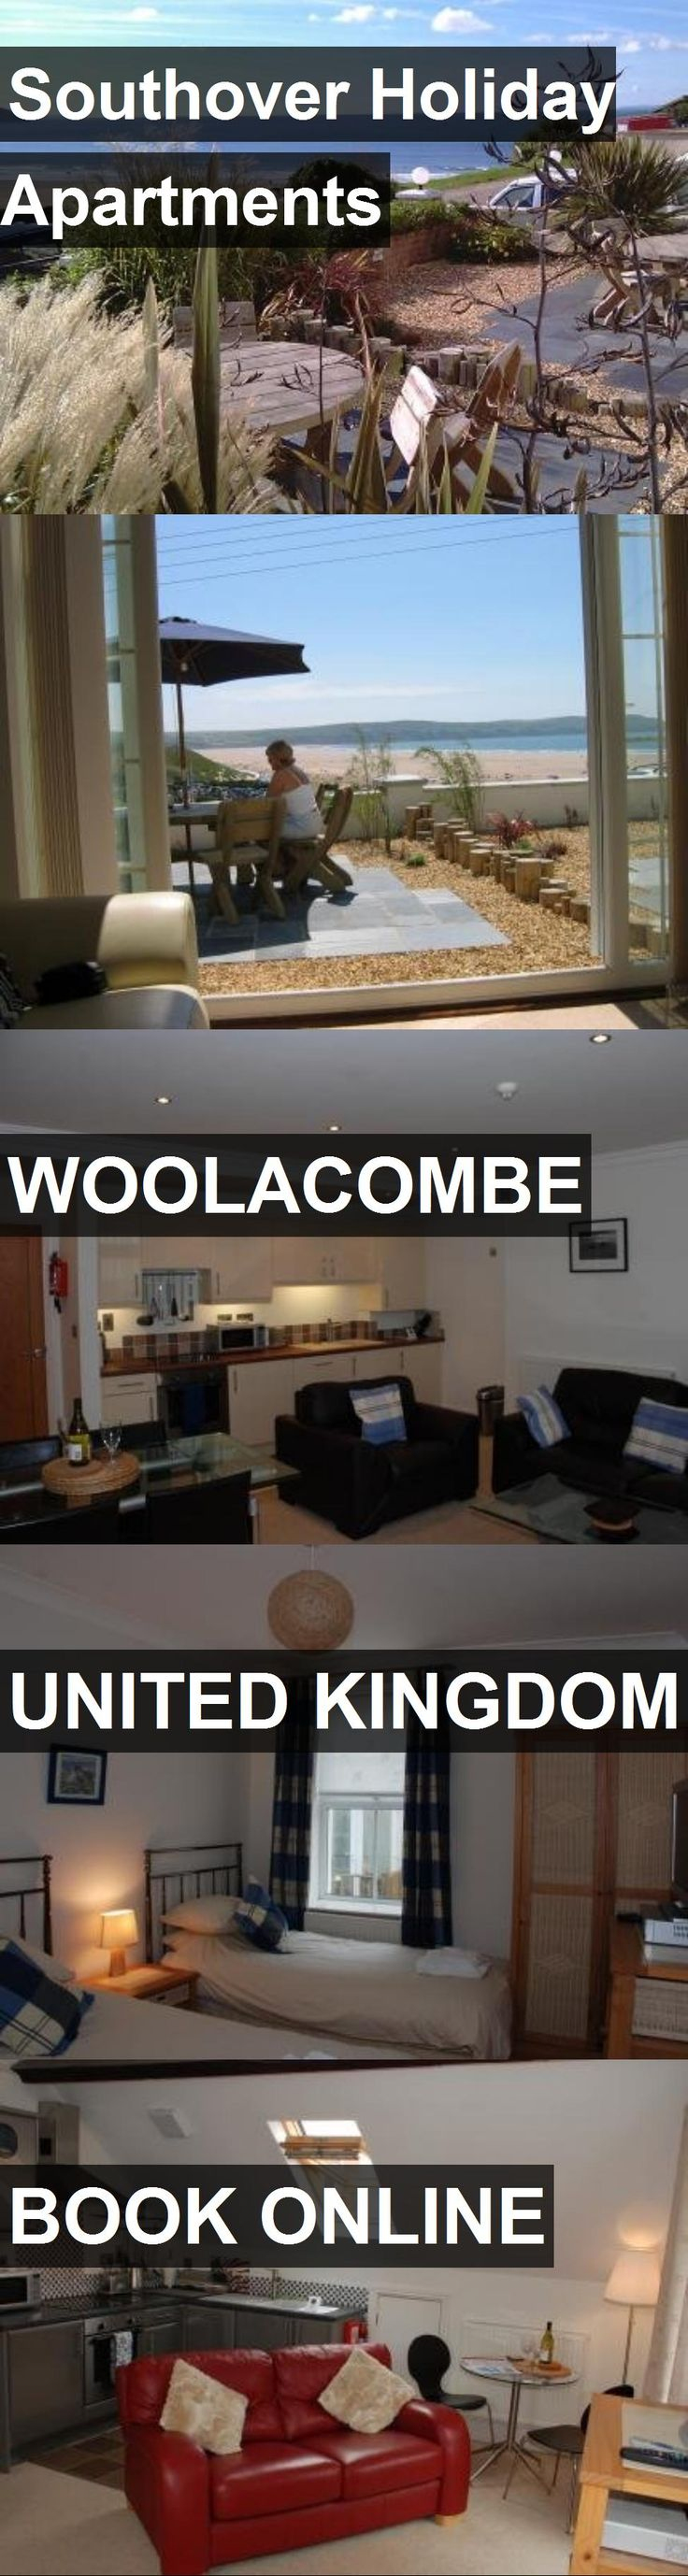 Hotel Southover Holiday Apartments in Woolacombe, United Kingdom. For more information, photos, reviews and best prices please follow the link. #UnitedKingdom #Woolacombe #SouthoverHolidayApartments #hotel #travel #vacation